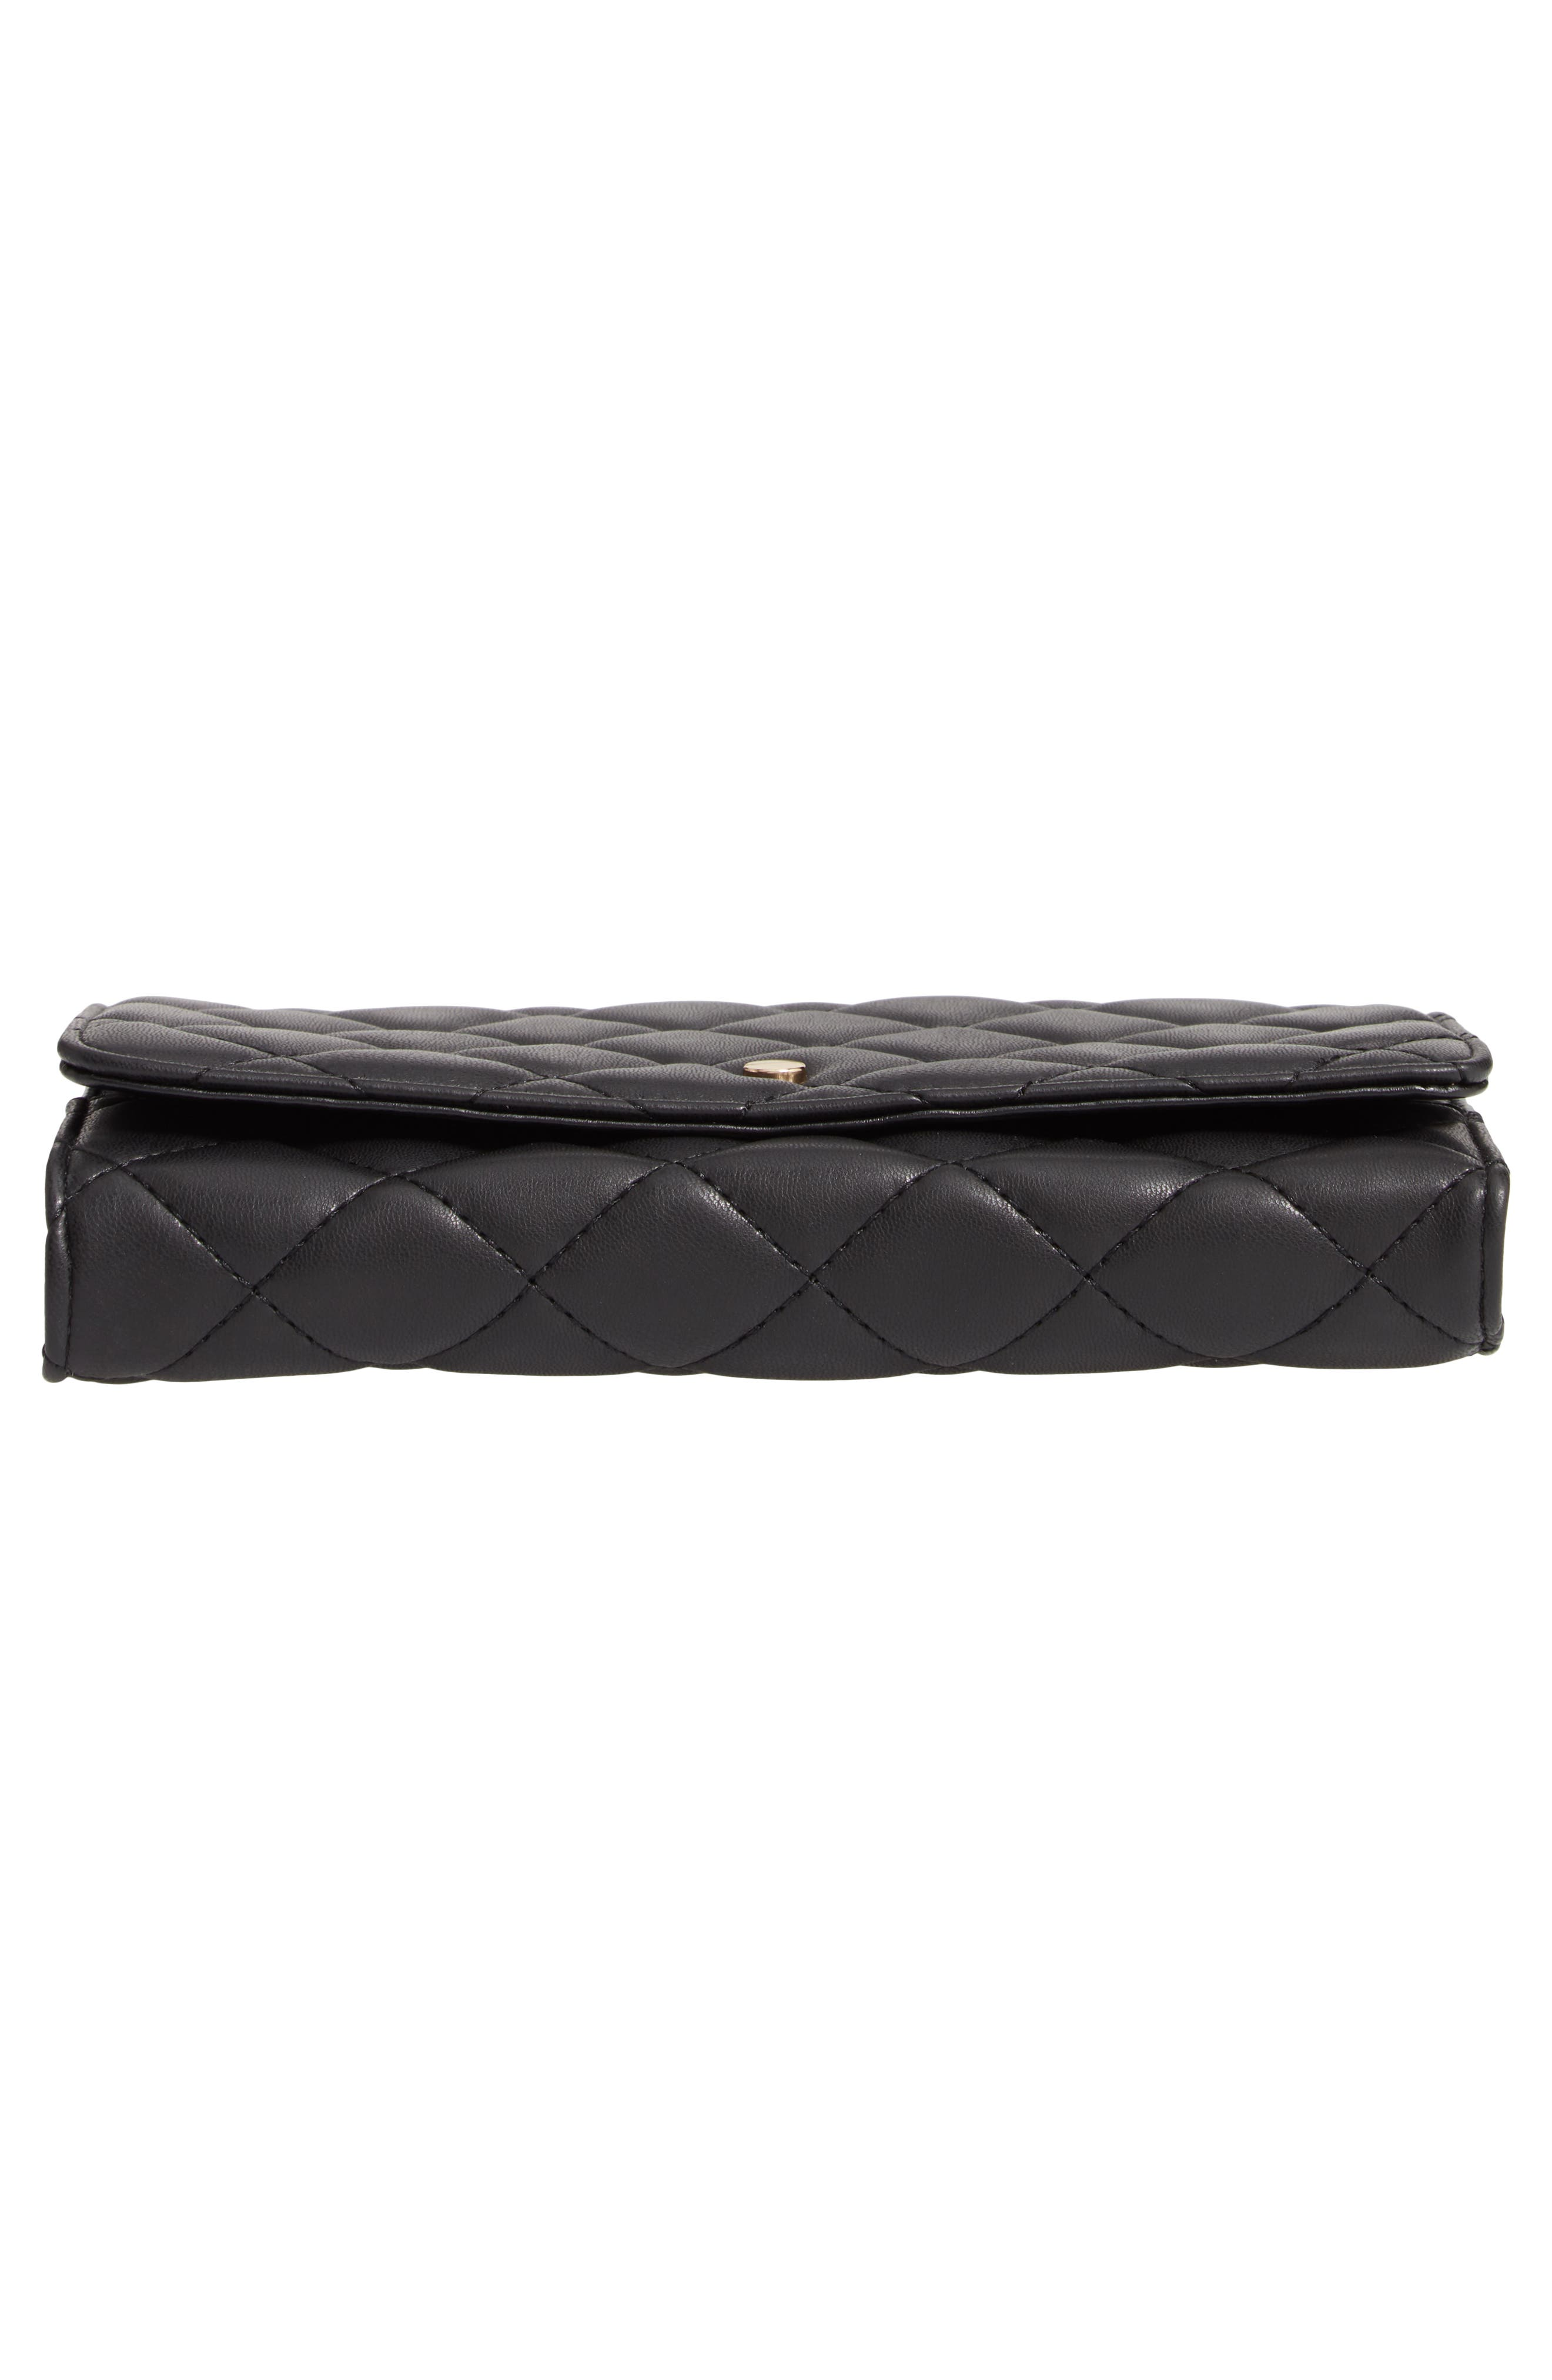 Mali + Lili Ciara Quilted Vegan Leather Convertible Clutch,                             Alternate thumbnail 6, color,                             BLACK